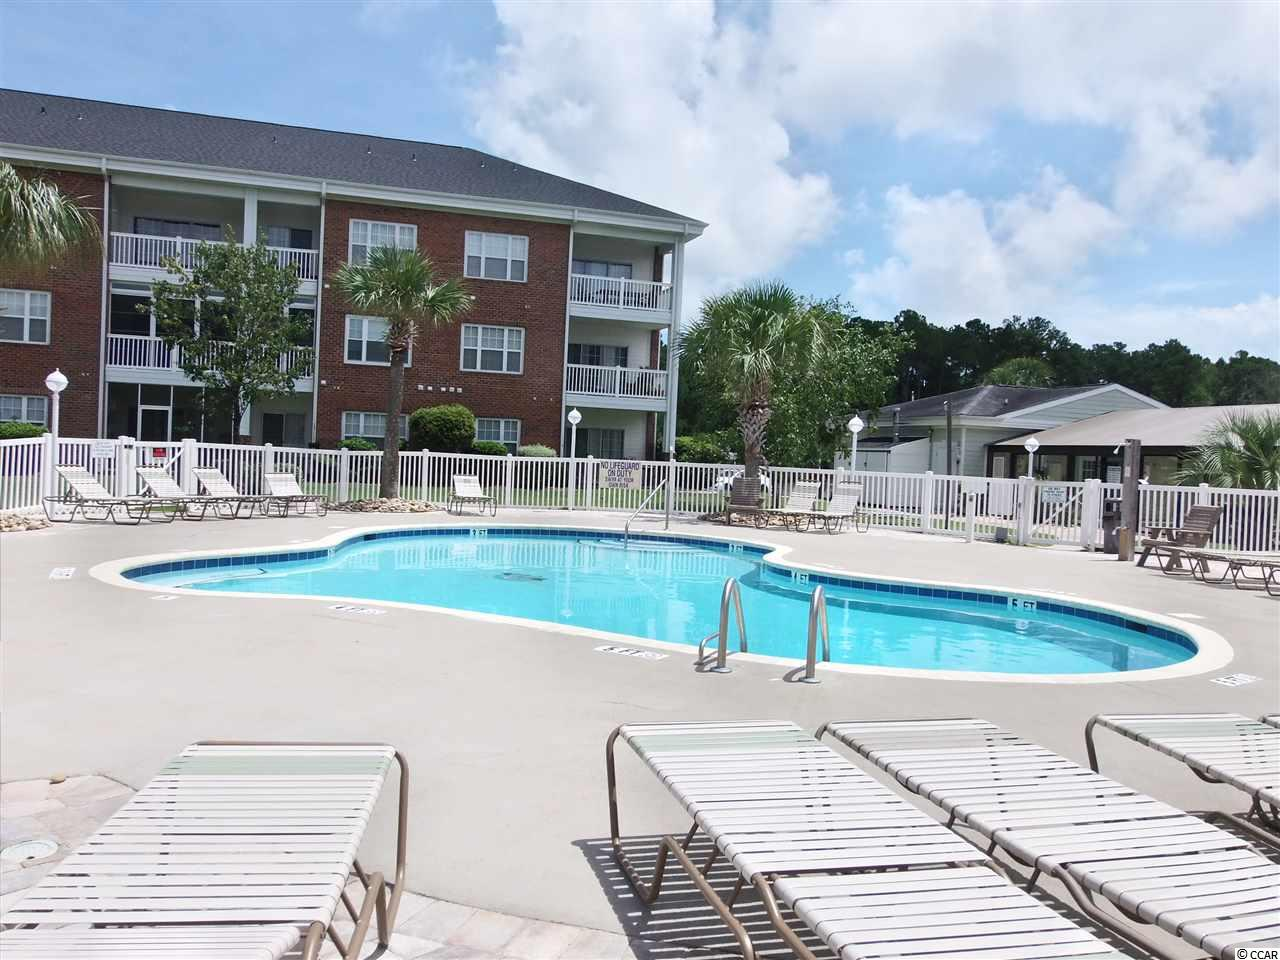 Condo For Sale At Azalea Lakes In Myrtle Beach South Carolina Unit 301 Listing Mls Number 1616455